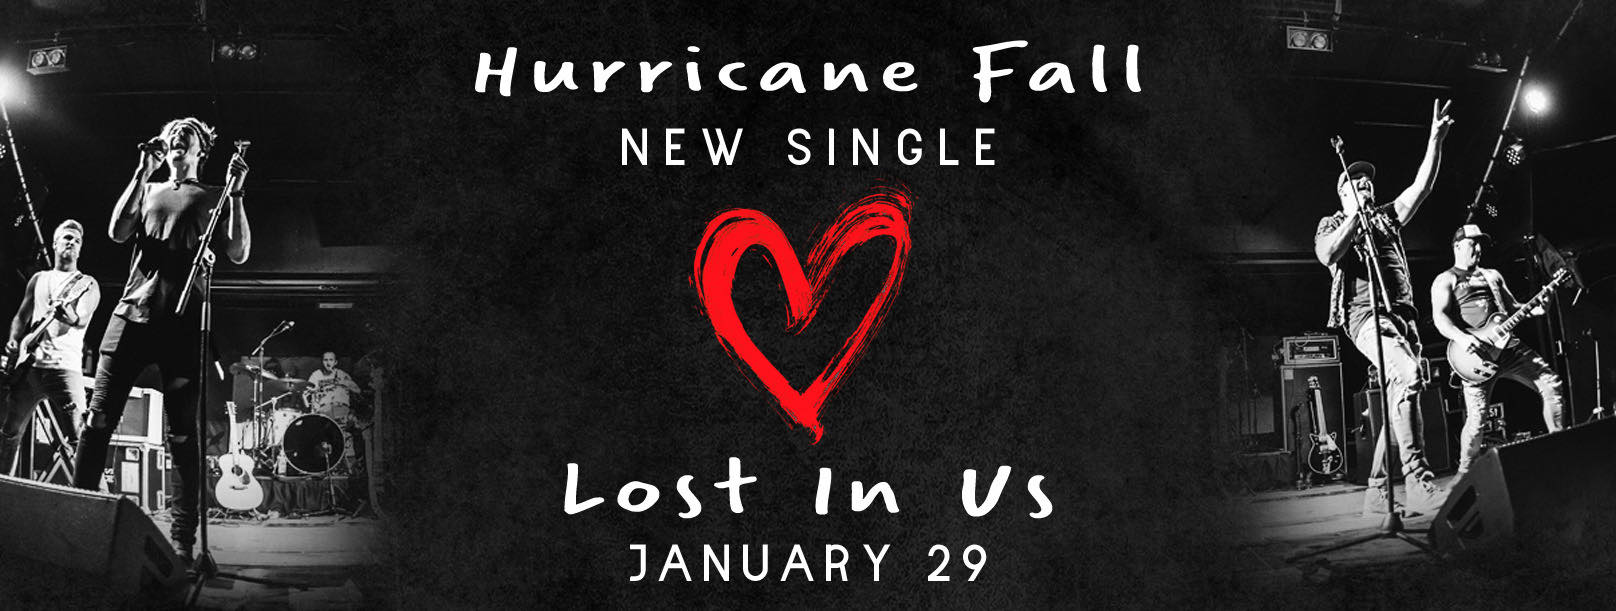 Hurricane Fall - Love in Us Tour